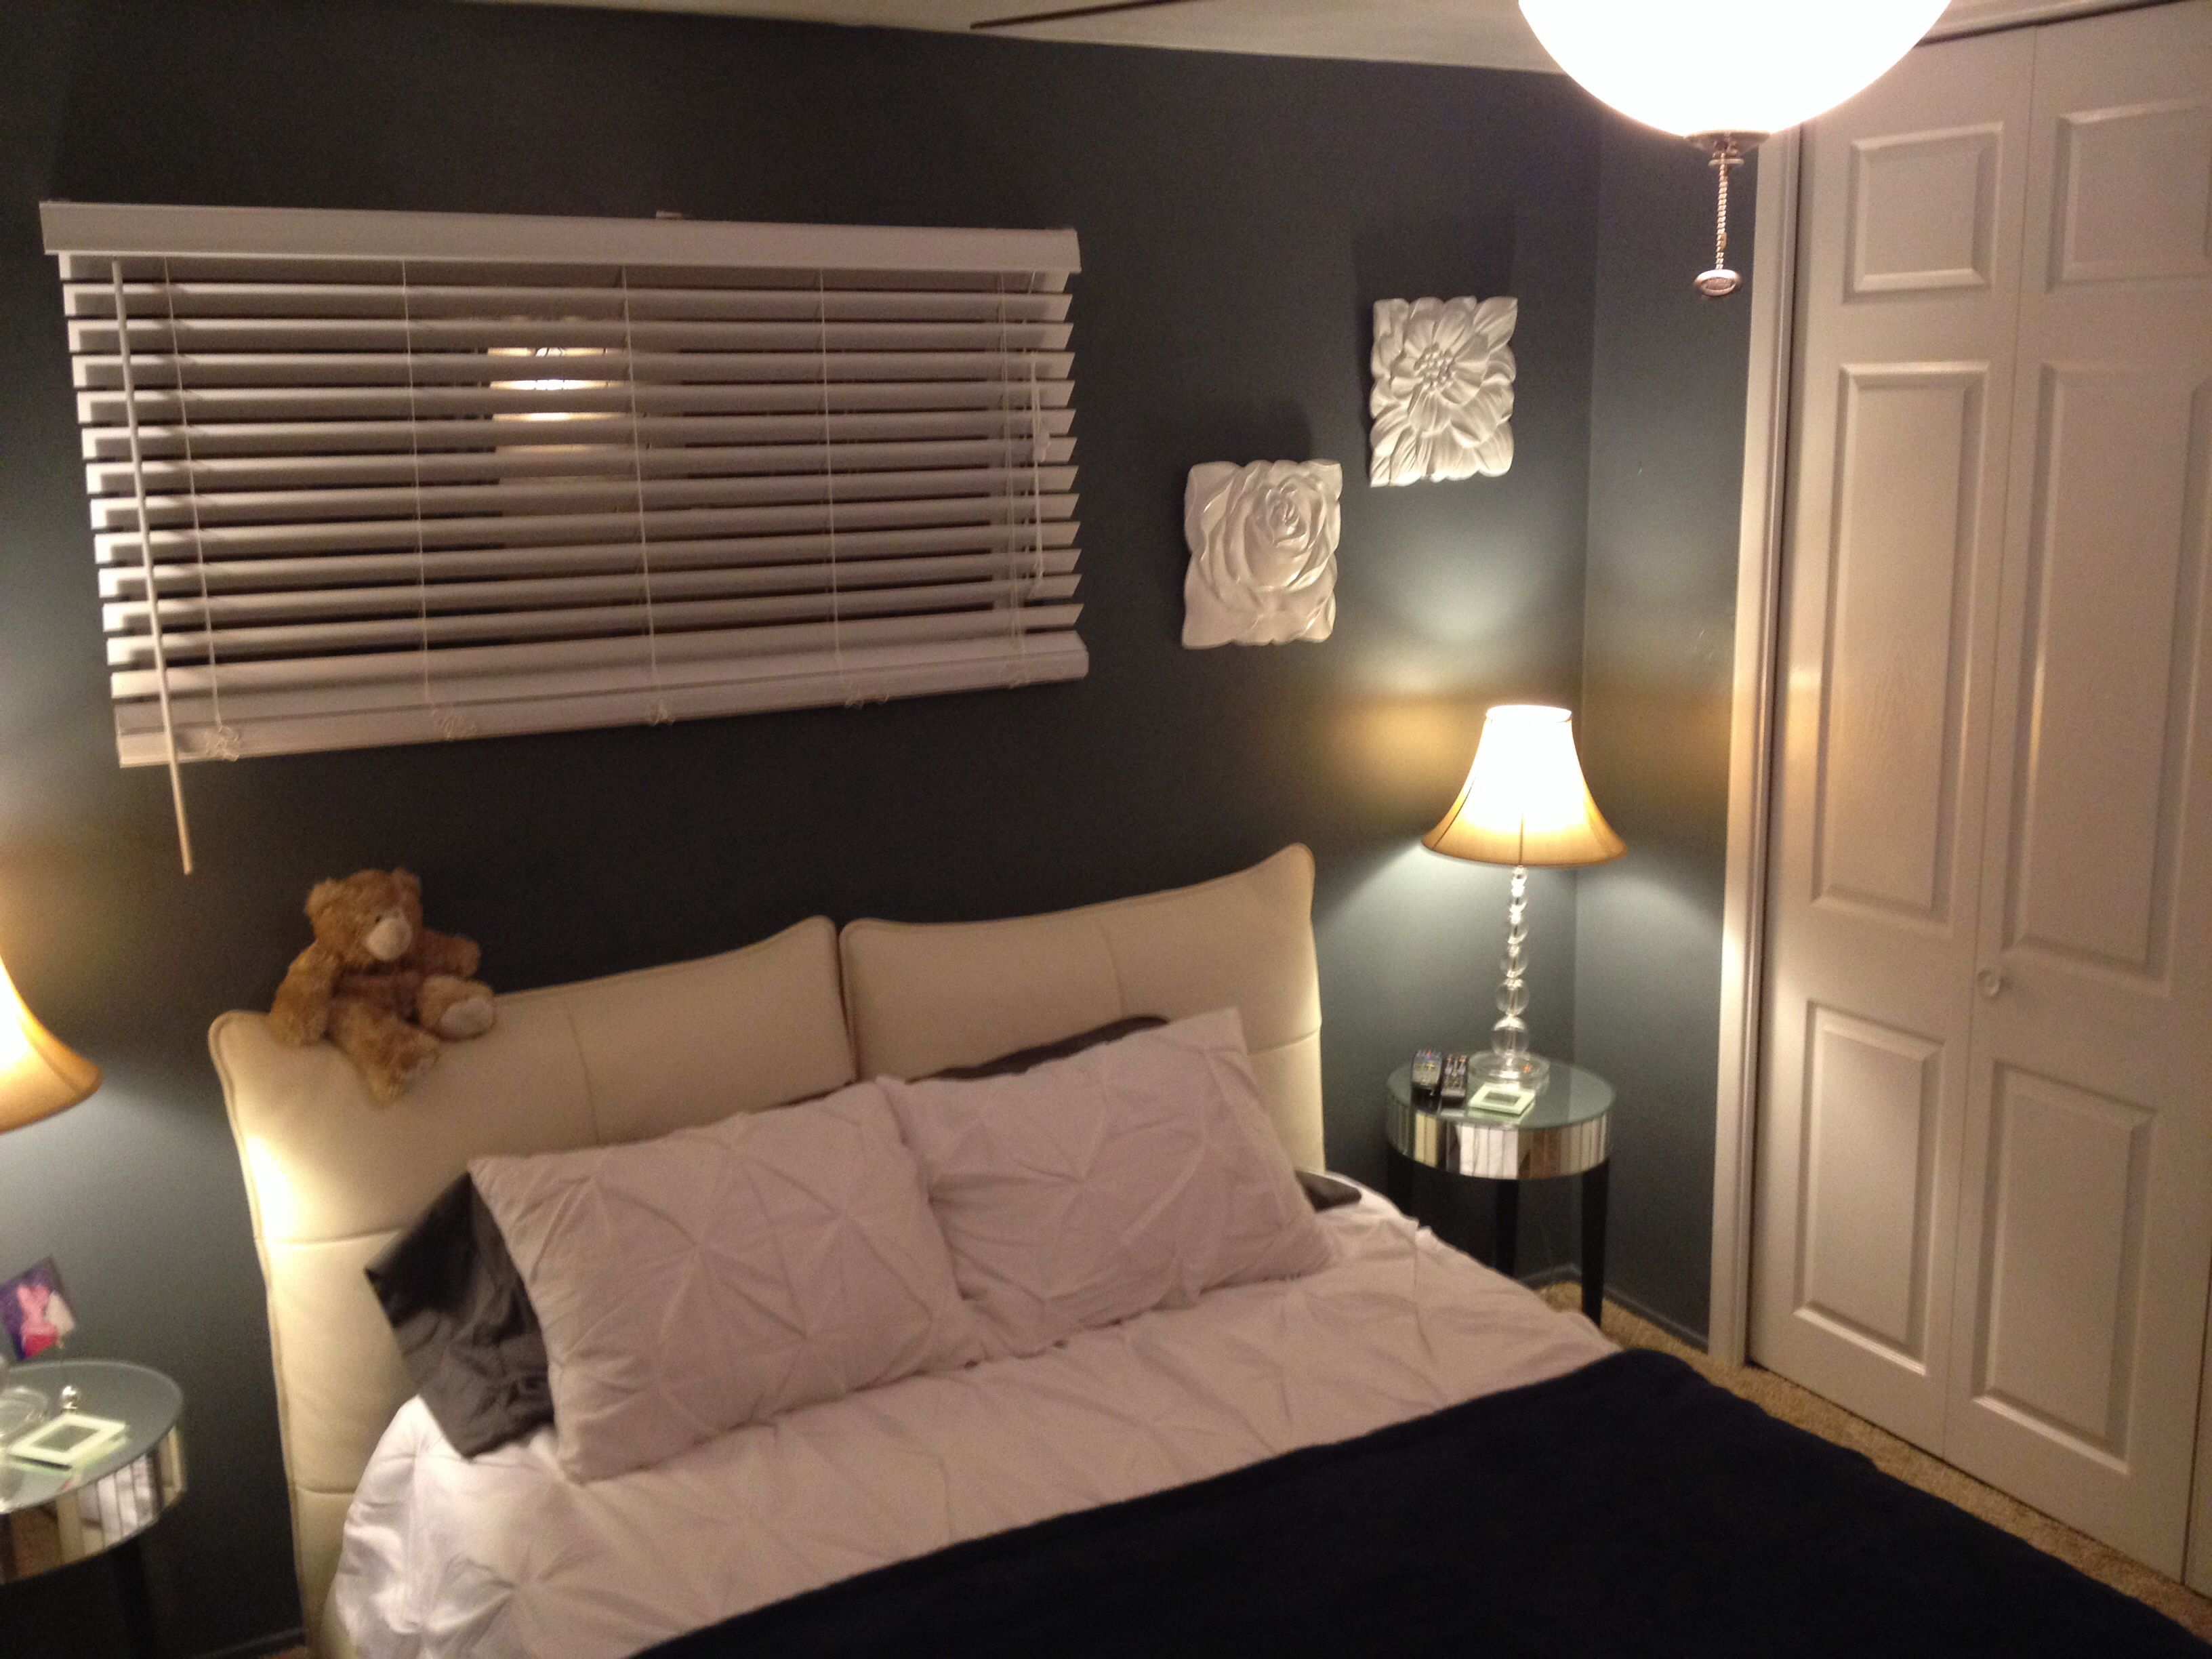 pin by leanne simmons on bedrooms work space modern on lowes paint colors interior gray id=52031